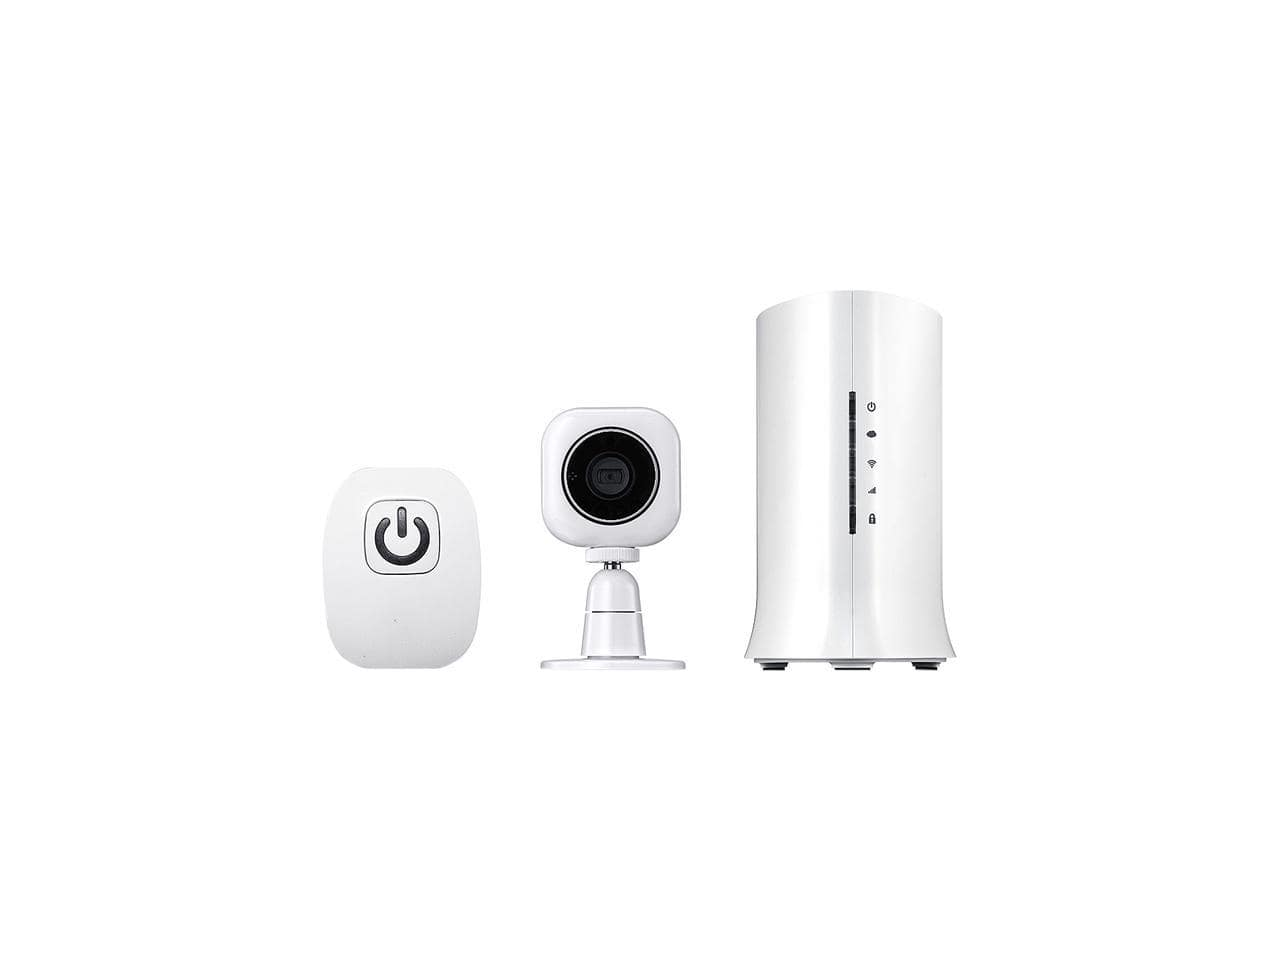 Home8 Alarm & Security System 30% off orders of $200 or More @newegg